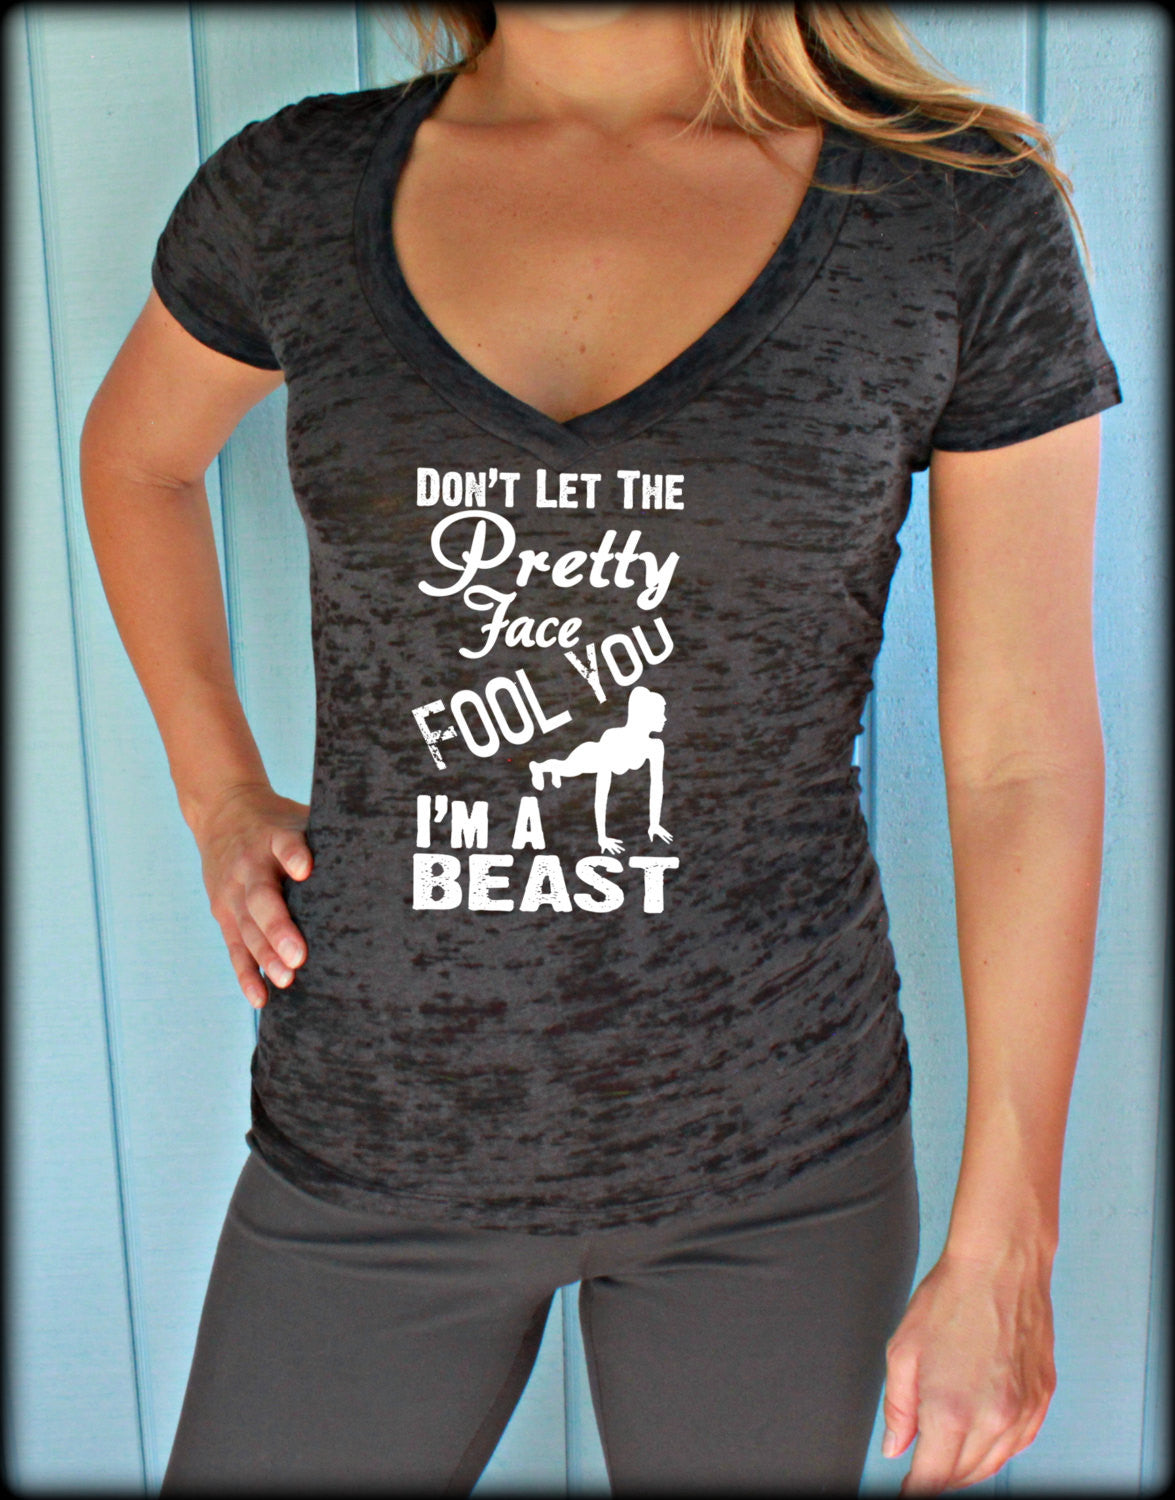 Womens Workout V Neck T Shirt. Inspirational Shirt. Don't Let the Pretty Face Fool You, I'm A Beast. Running T-Shirt. Burnout T Shirt.